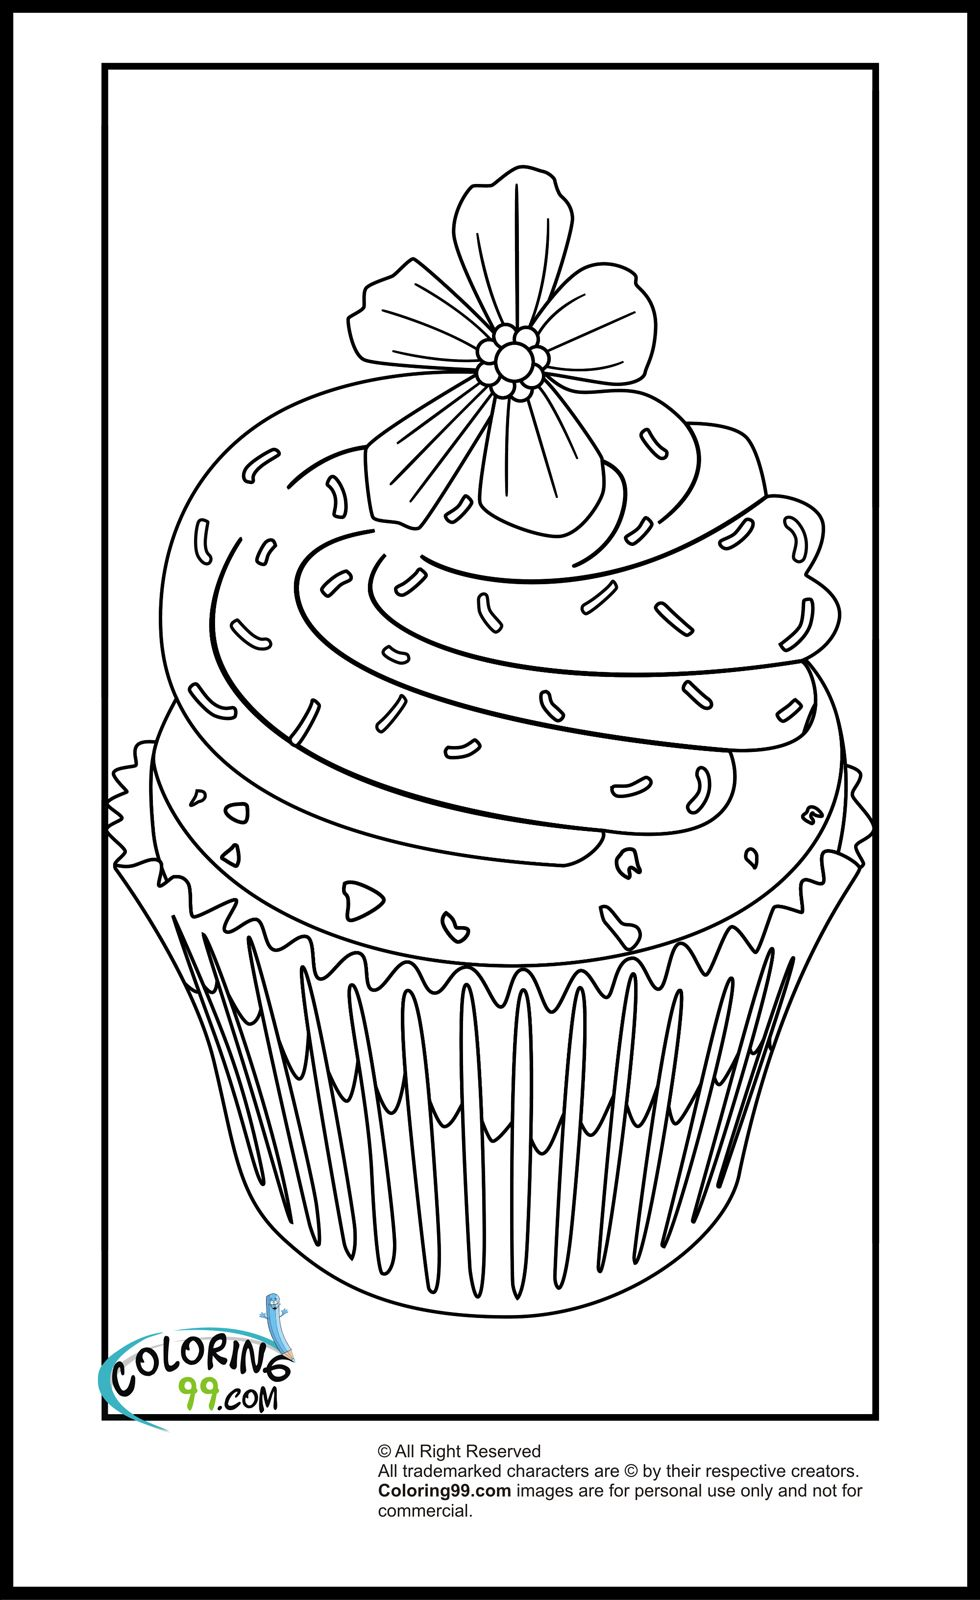 cupcake colouring template sprinkles topping cupcake coloring page netart cupcake colouring template